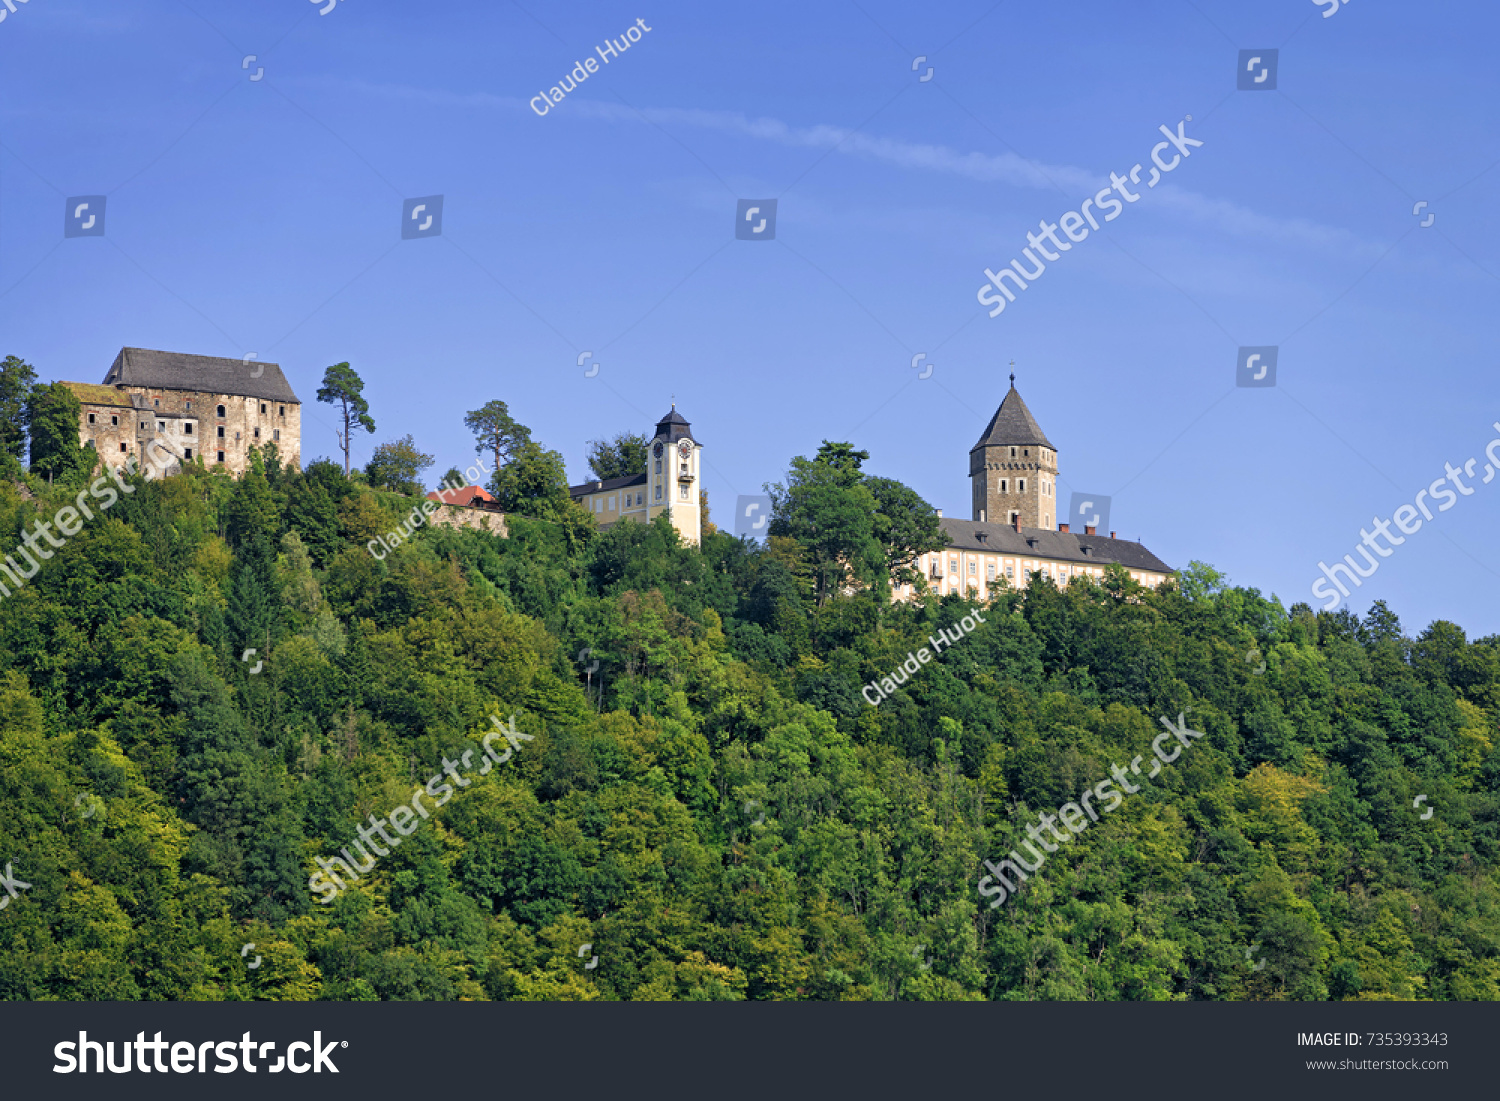 UNTERMUHL, AUSTRIA - SEPTEMBER 9, 2017: This is the Neuhaus Castle which is situated above the village of Untermuhl on the Danube. The site is privately owned and inhabited. It was renovated in 2007.